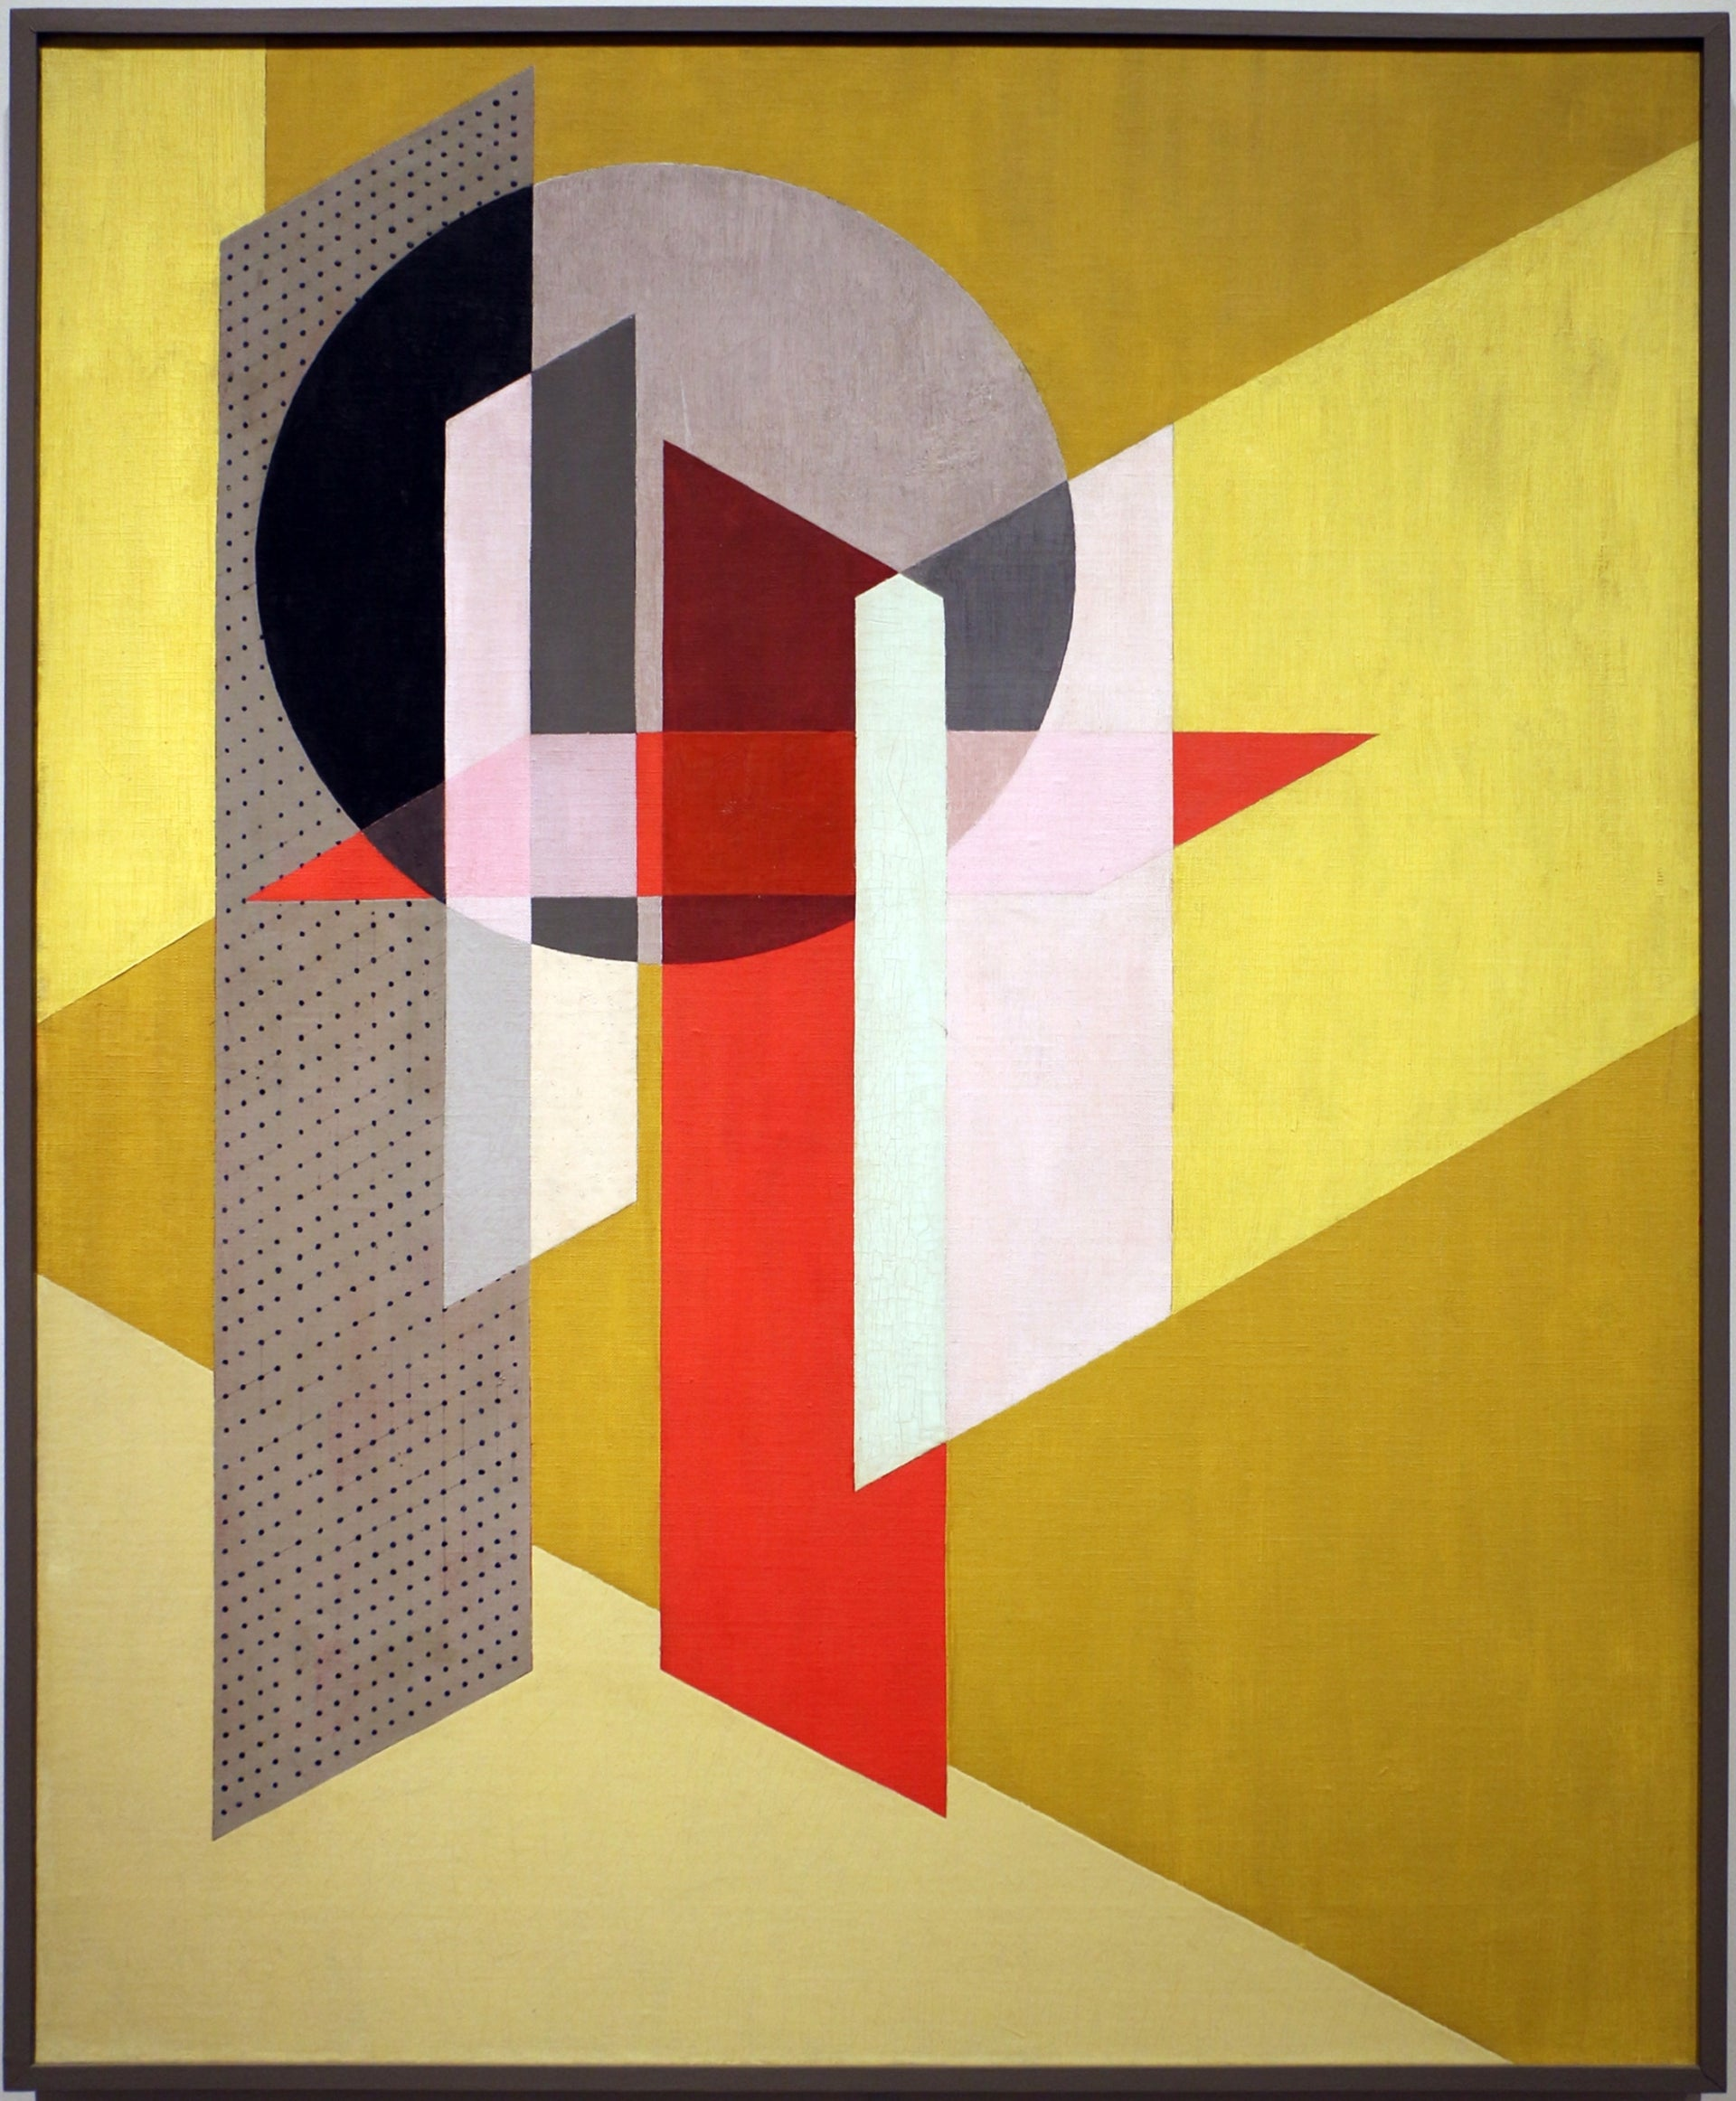 László Moholy-Nagy's 'Z VII,' oil and graphite on canvas, 1926.